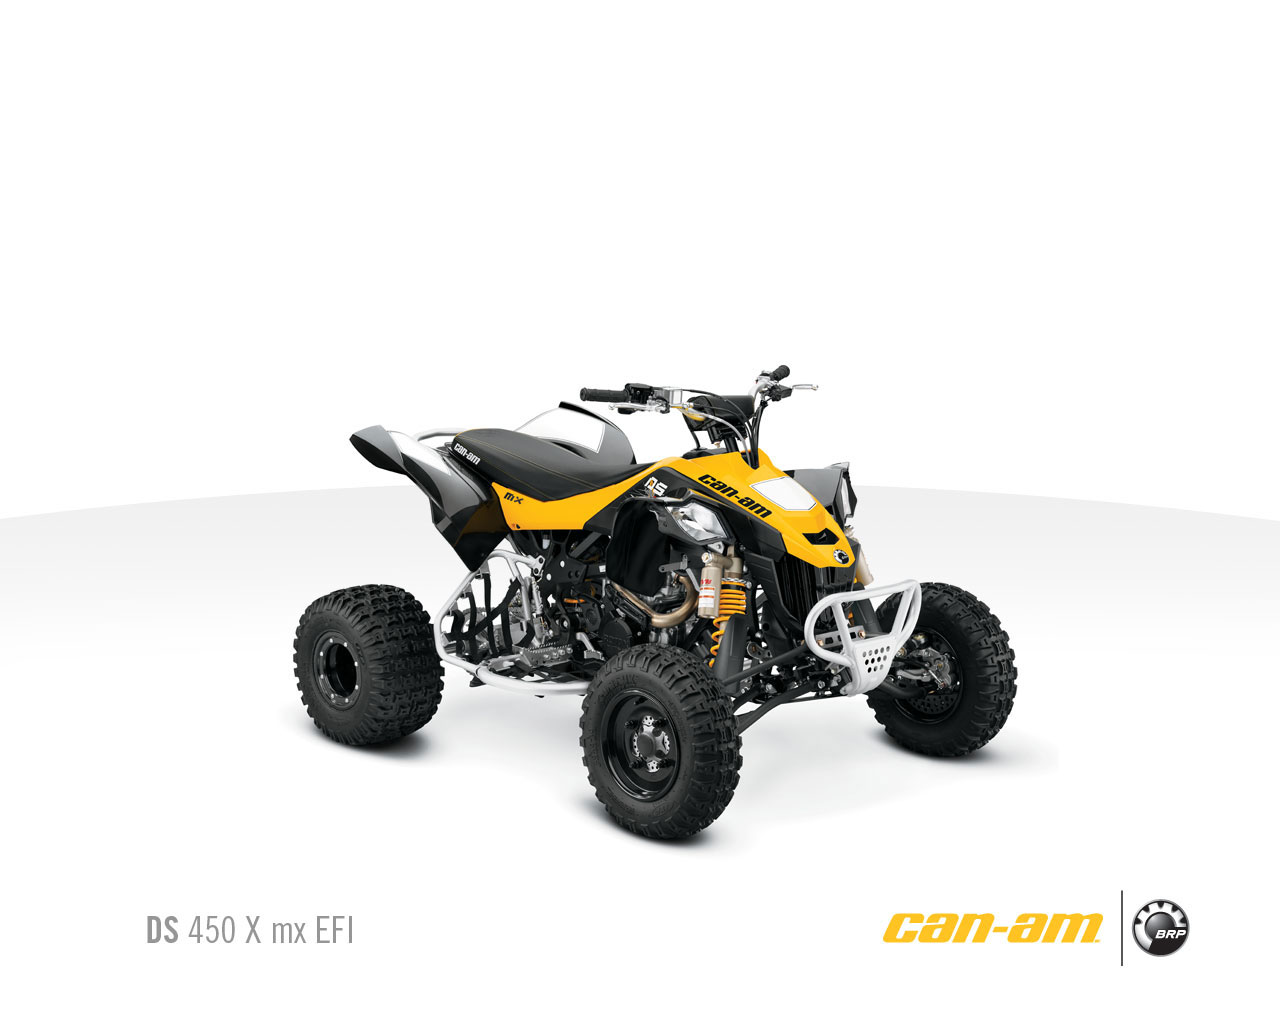 can am brp ds 450 x mx specs 2010, 2011 autoevolution Diesel Engine Diagram Description  Yamaha Engine Parts Diagram Polaris XLT 600 Carb Parts Diagrams Polaris ATV Parts Diagram